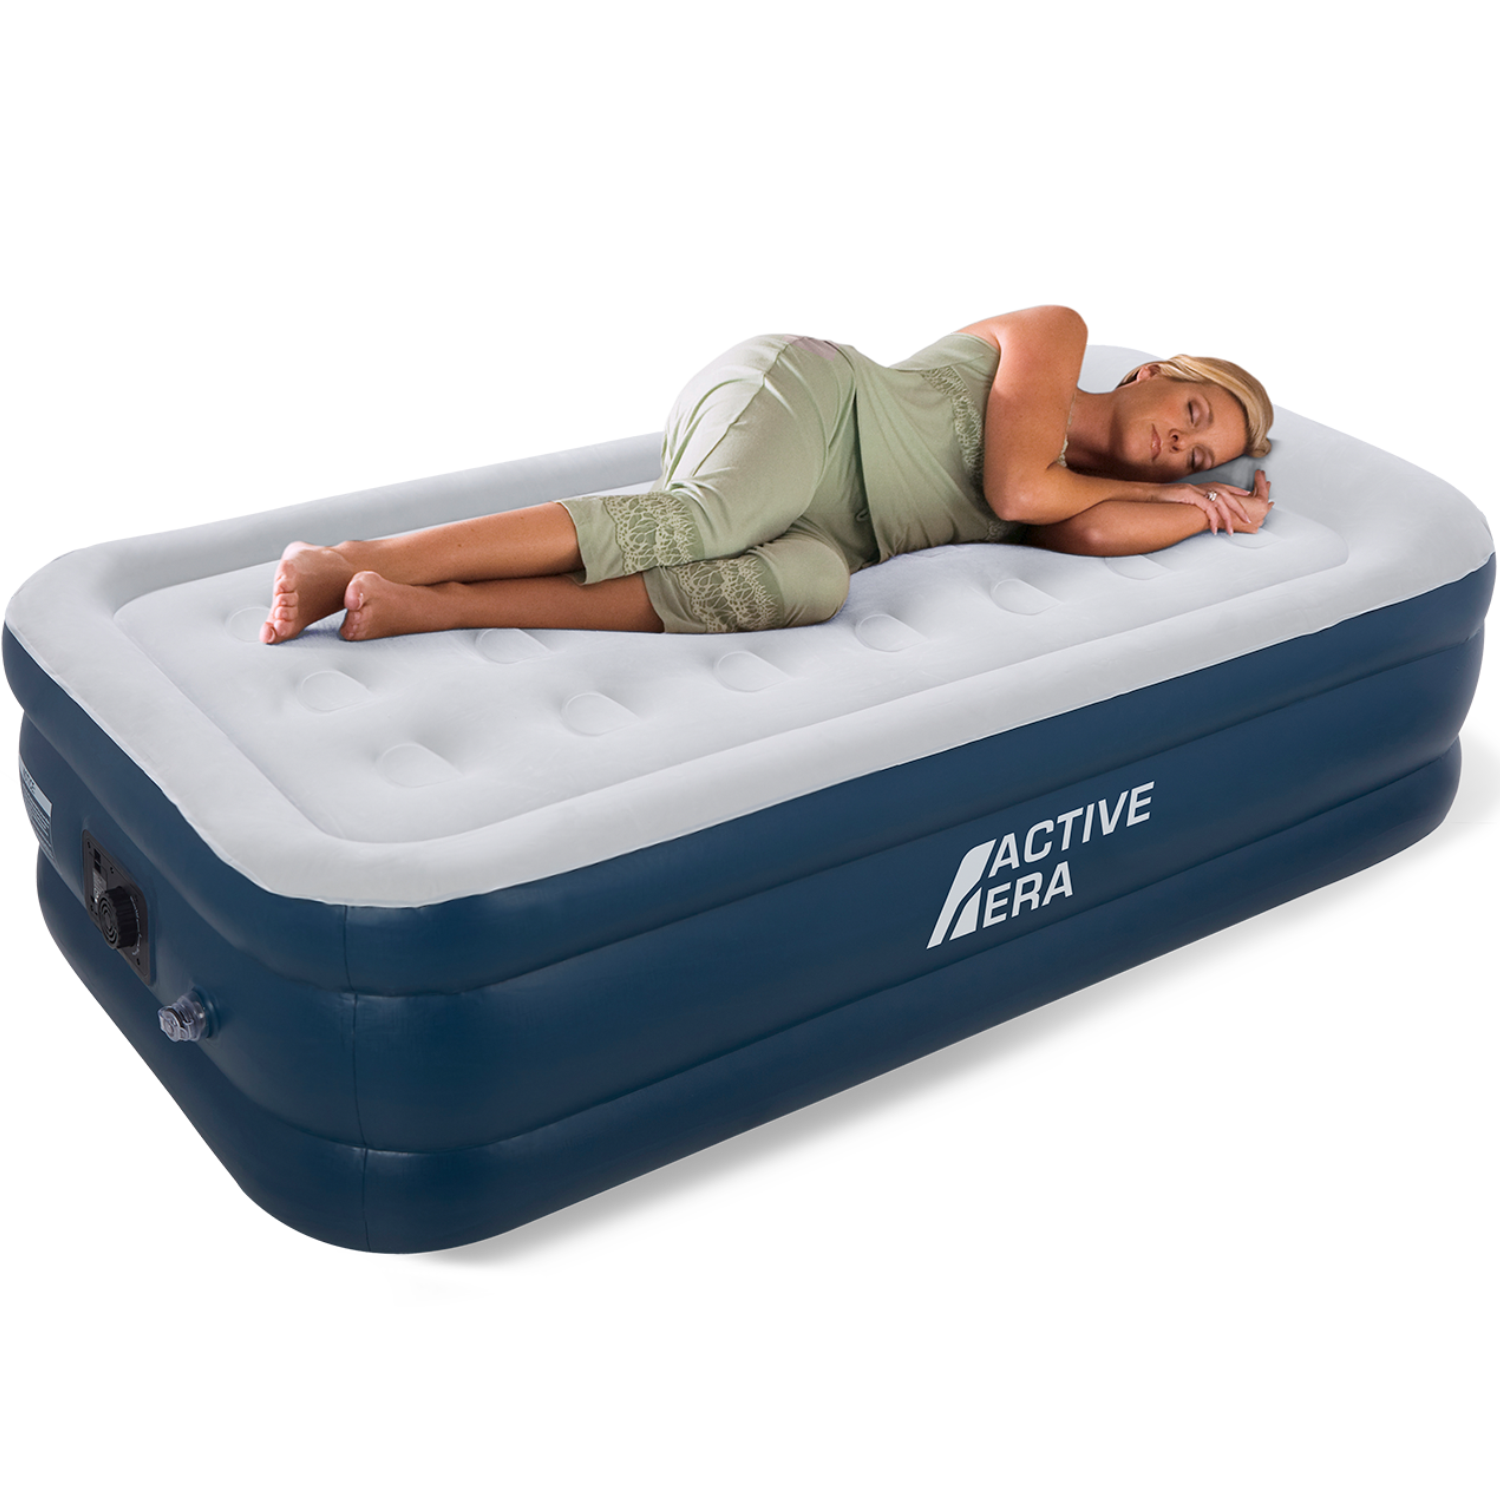 Picture of: Tesco Jl29p381e Raised Single Air Bed With Built In Electric Pump Blue For Sale Ebay